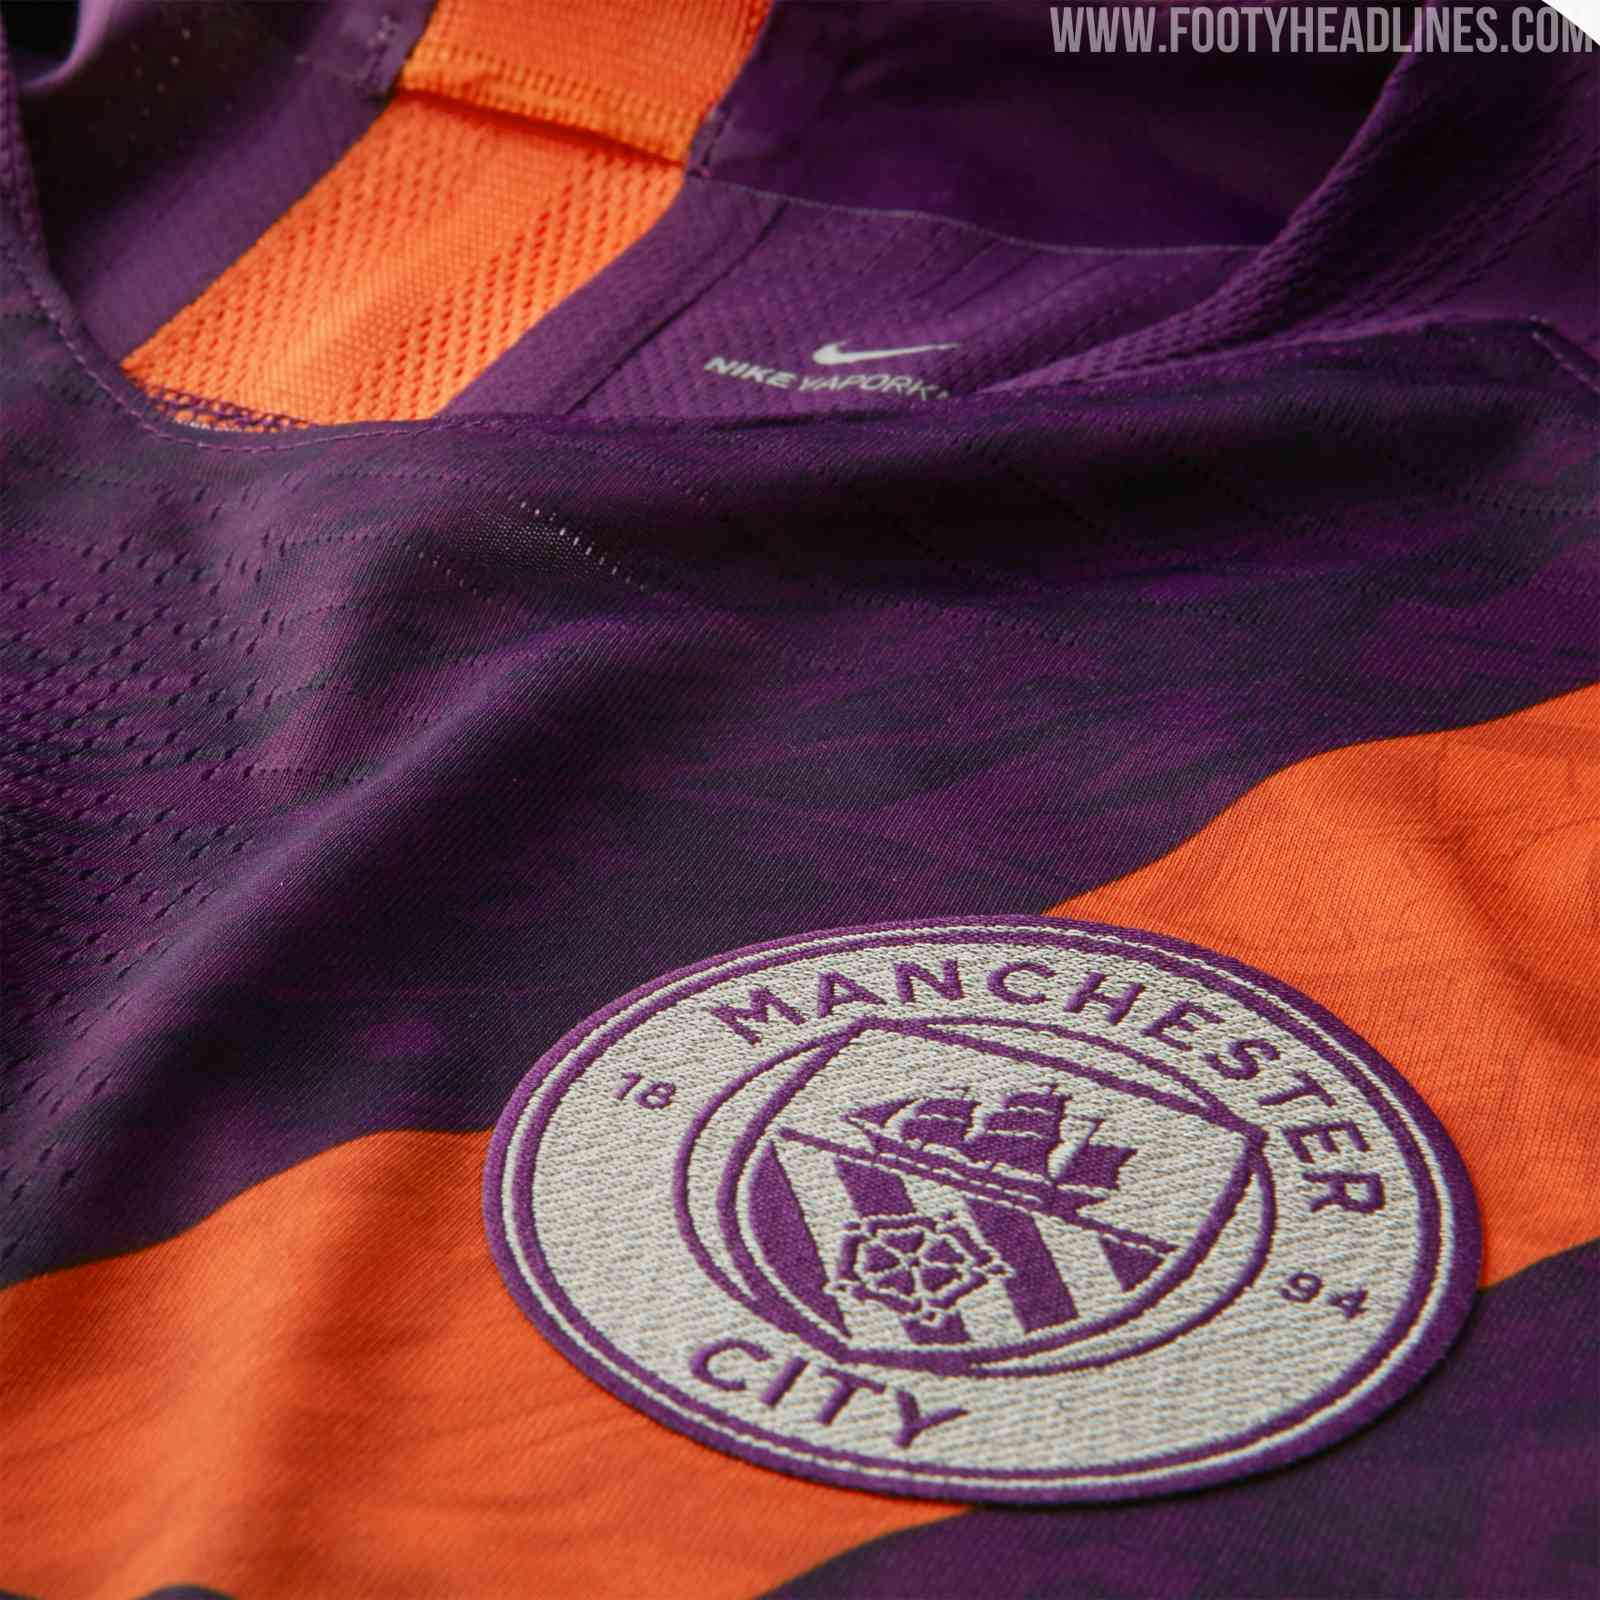 36136a84baf3 There's a subtle graphic print on the front and back of the new Manchester  City third kit. In line with Nike's other 2018-2019 third uniforms, ...